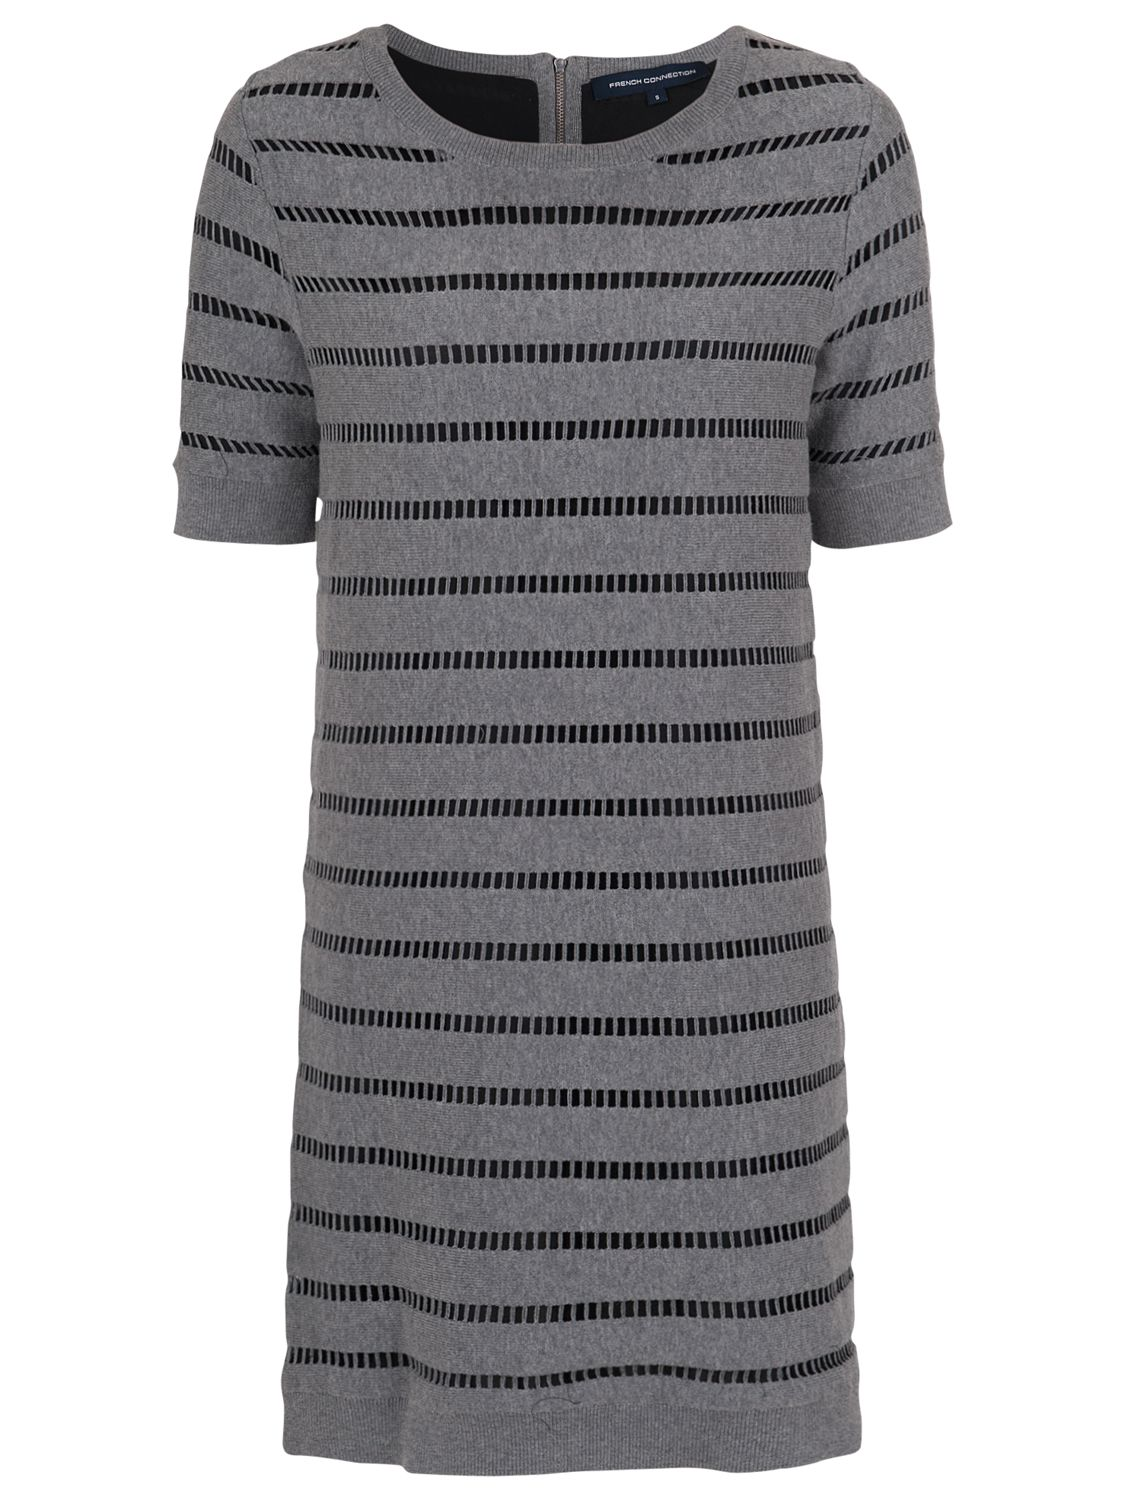 french connection una knits short sleeve dress grey mel/black, french, connection, una, knits, short, sleeve, dress, grey, mel/black, french connection, 14|10|6|16|8|12, clearance, womenswear offers, womens dresses offers, women, inactive womenswear, new reductions, womens dresses, special offers, 1694052